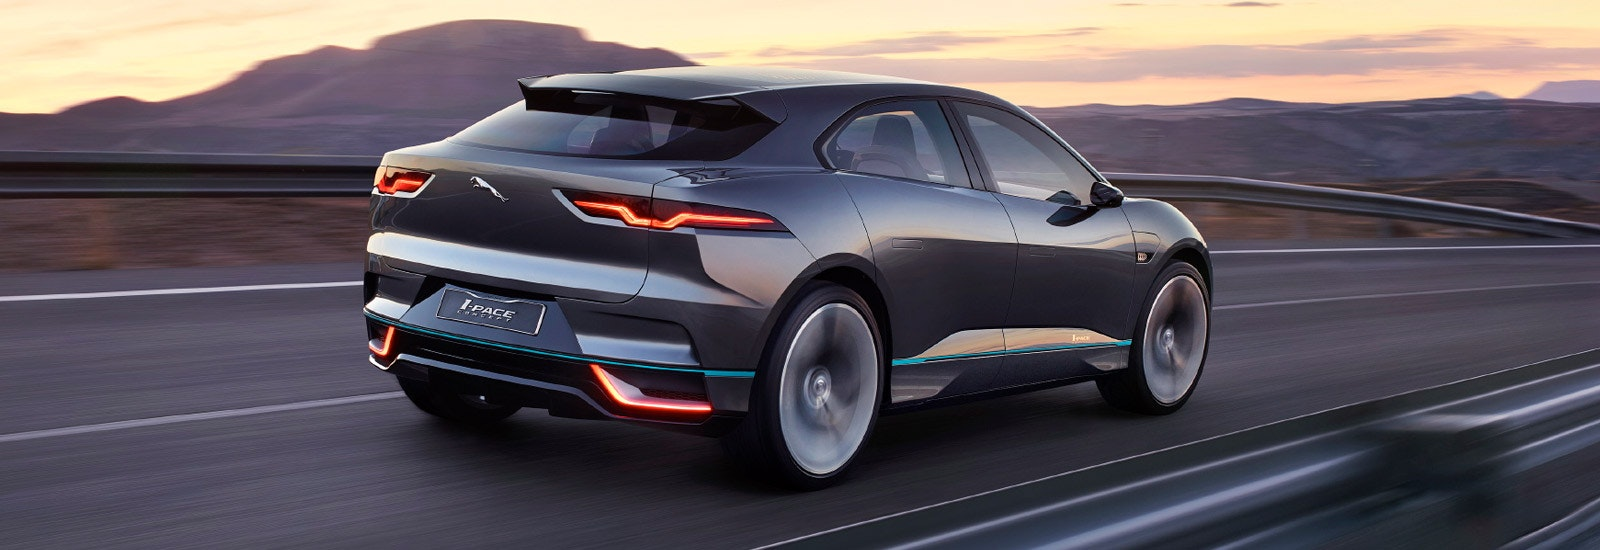 Jaguar I Pace Electric Suv Price Specs Release Date Carwow